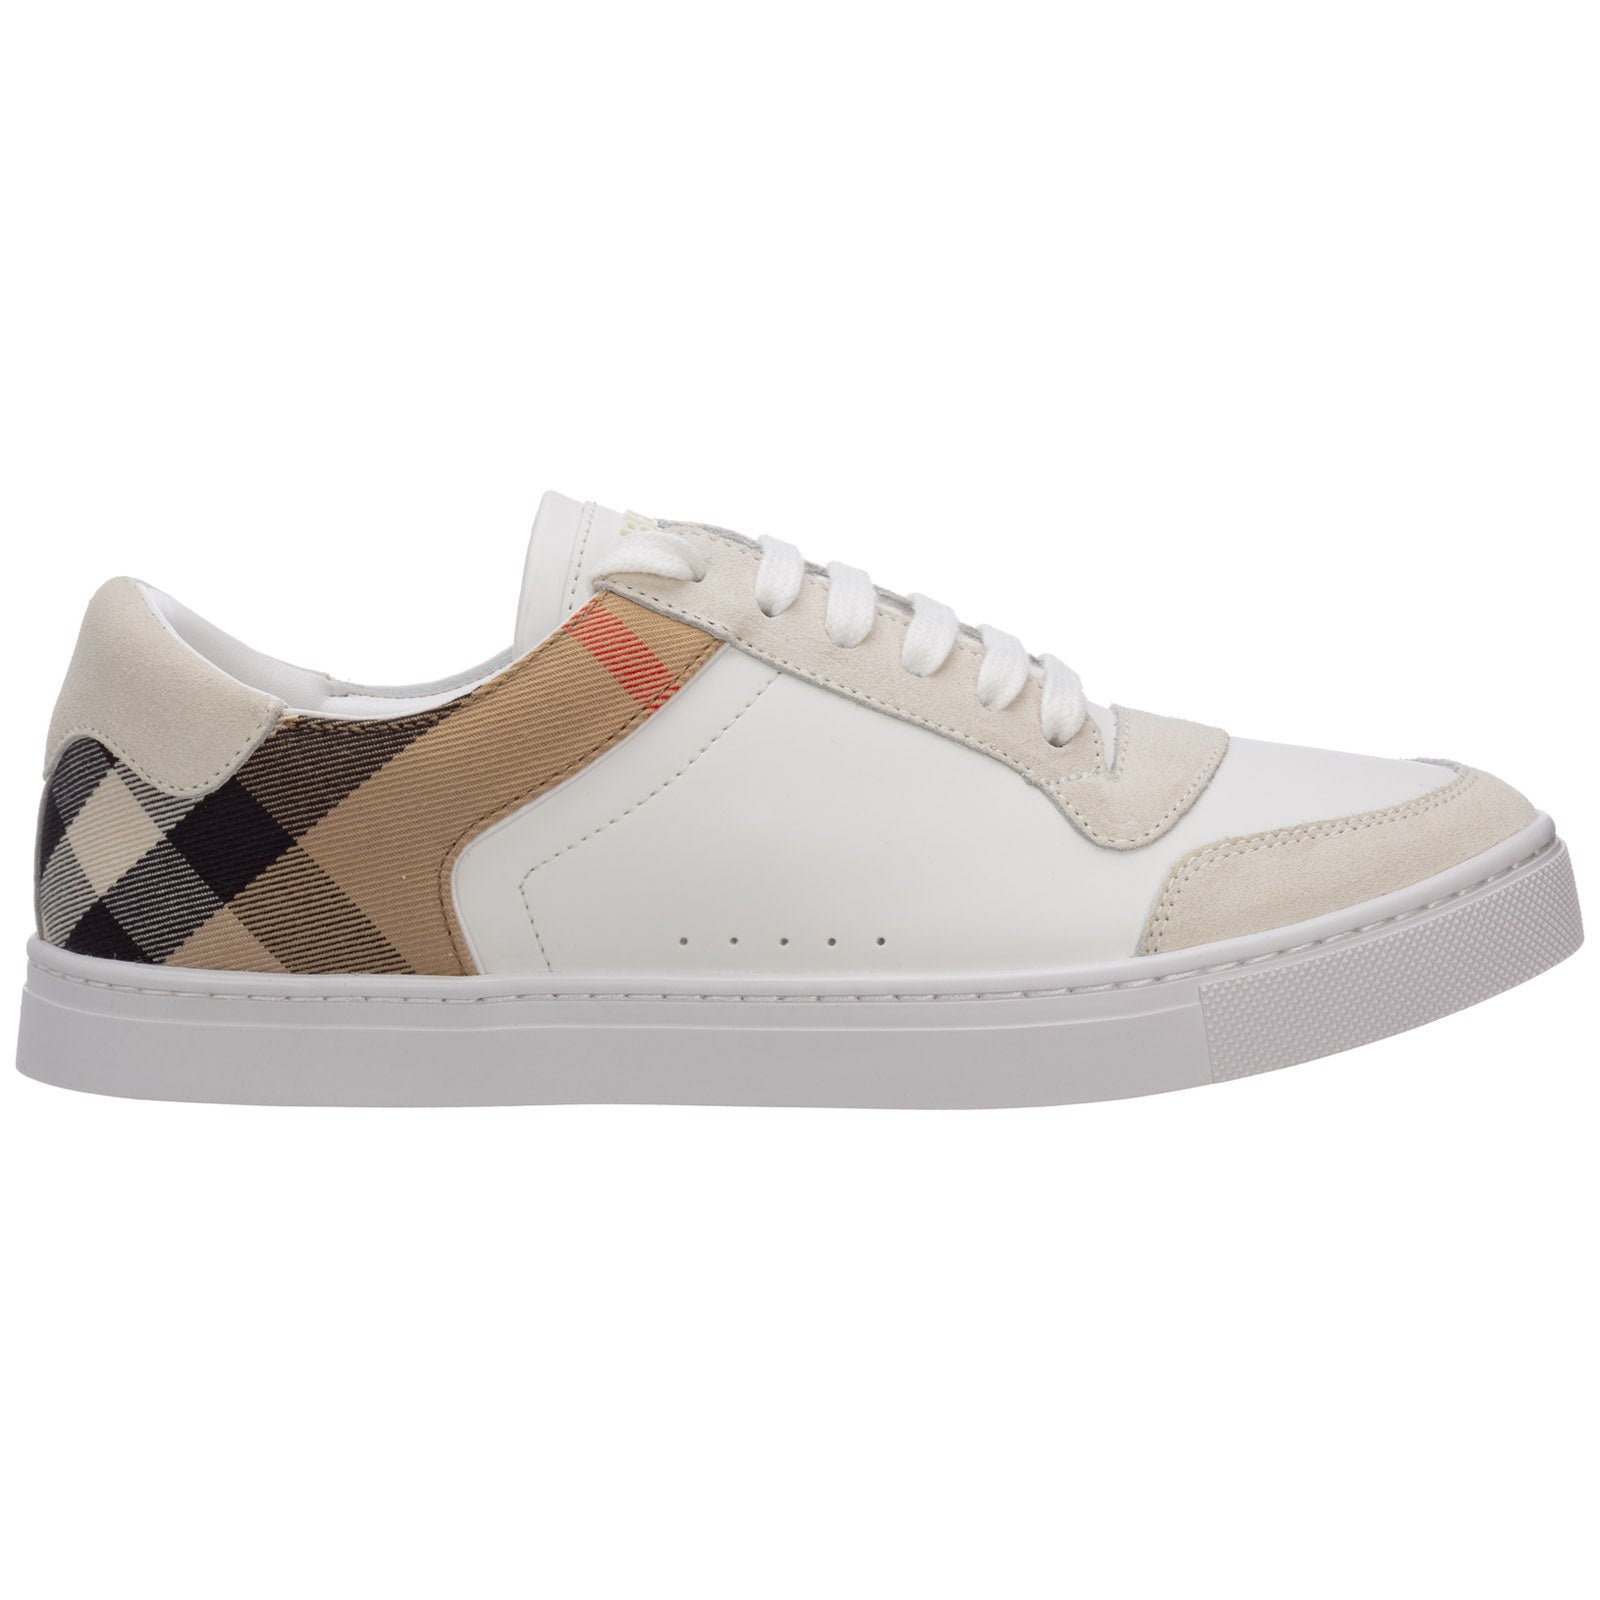 Burberry BURBERRY HOUSE CHECK SNEAKERS